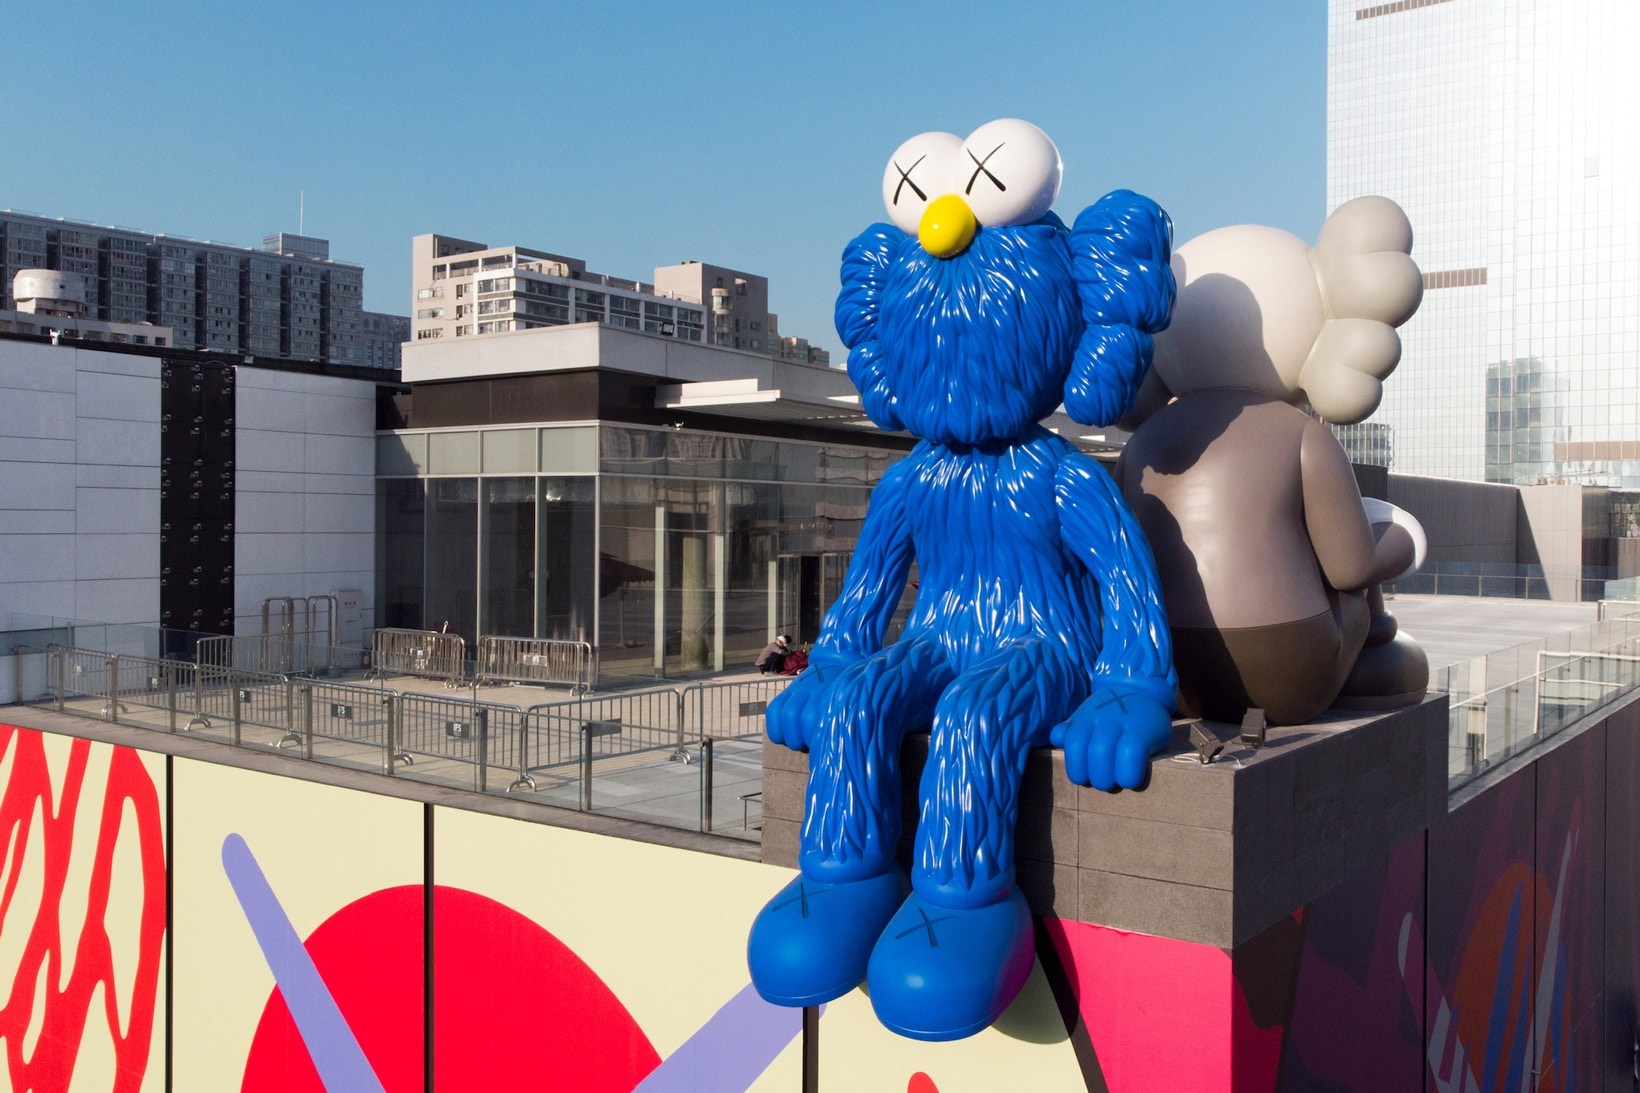 kaws-seeing-watching-changsha-ifs-permanent-sculptures-china-3